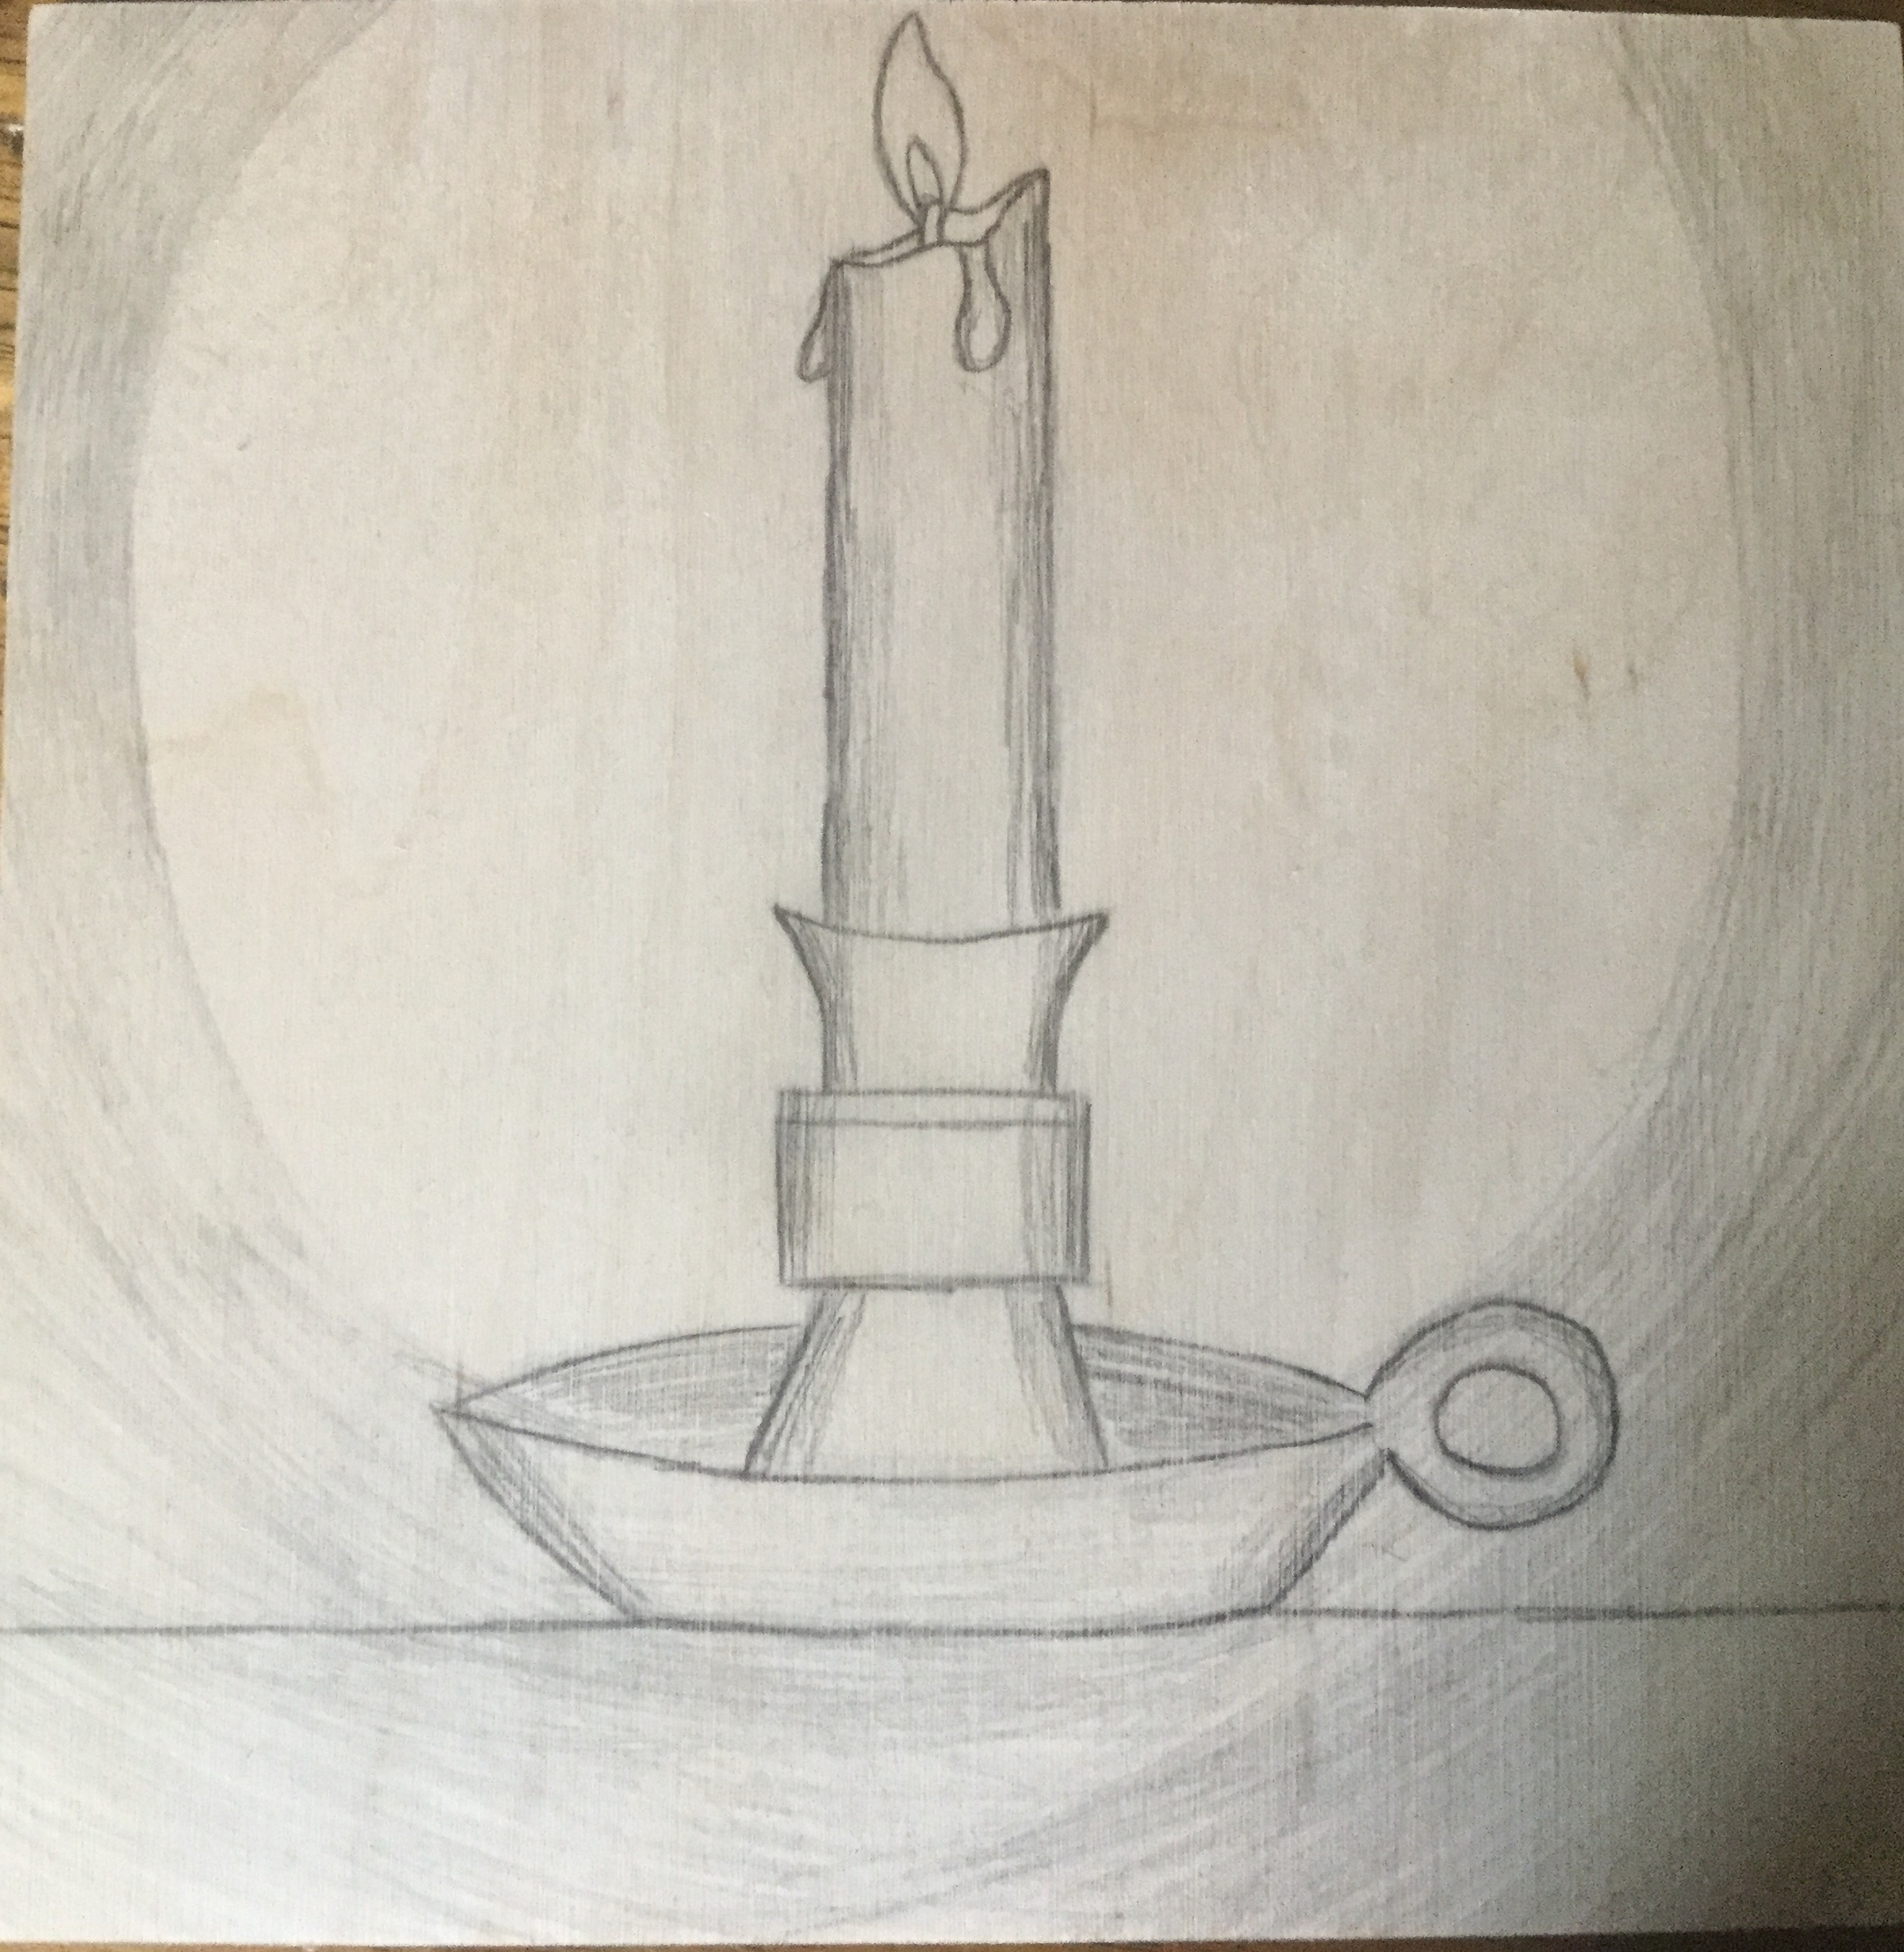 Candle on wood